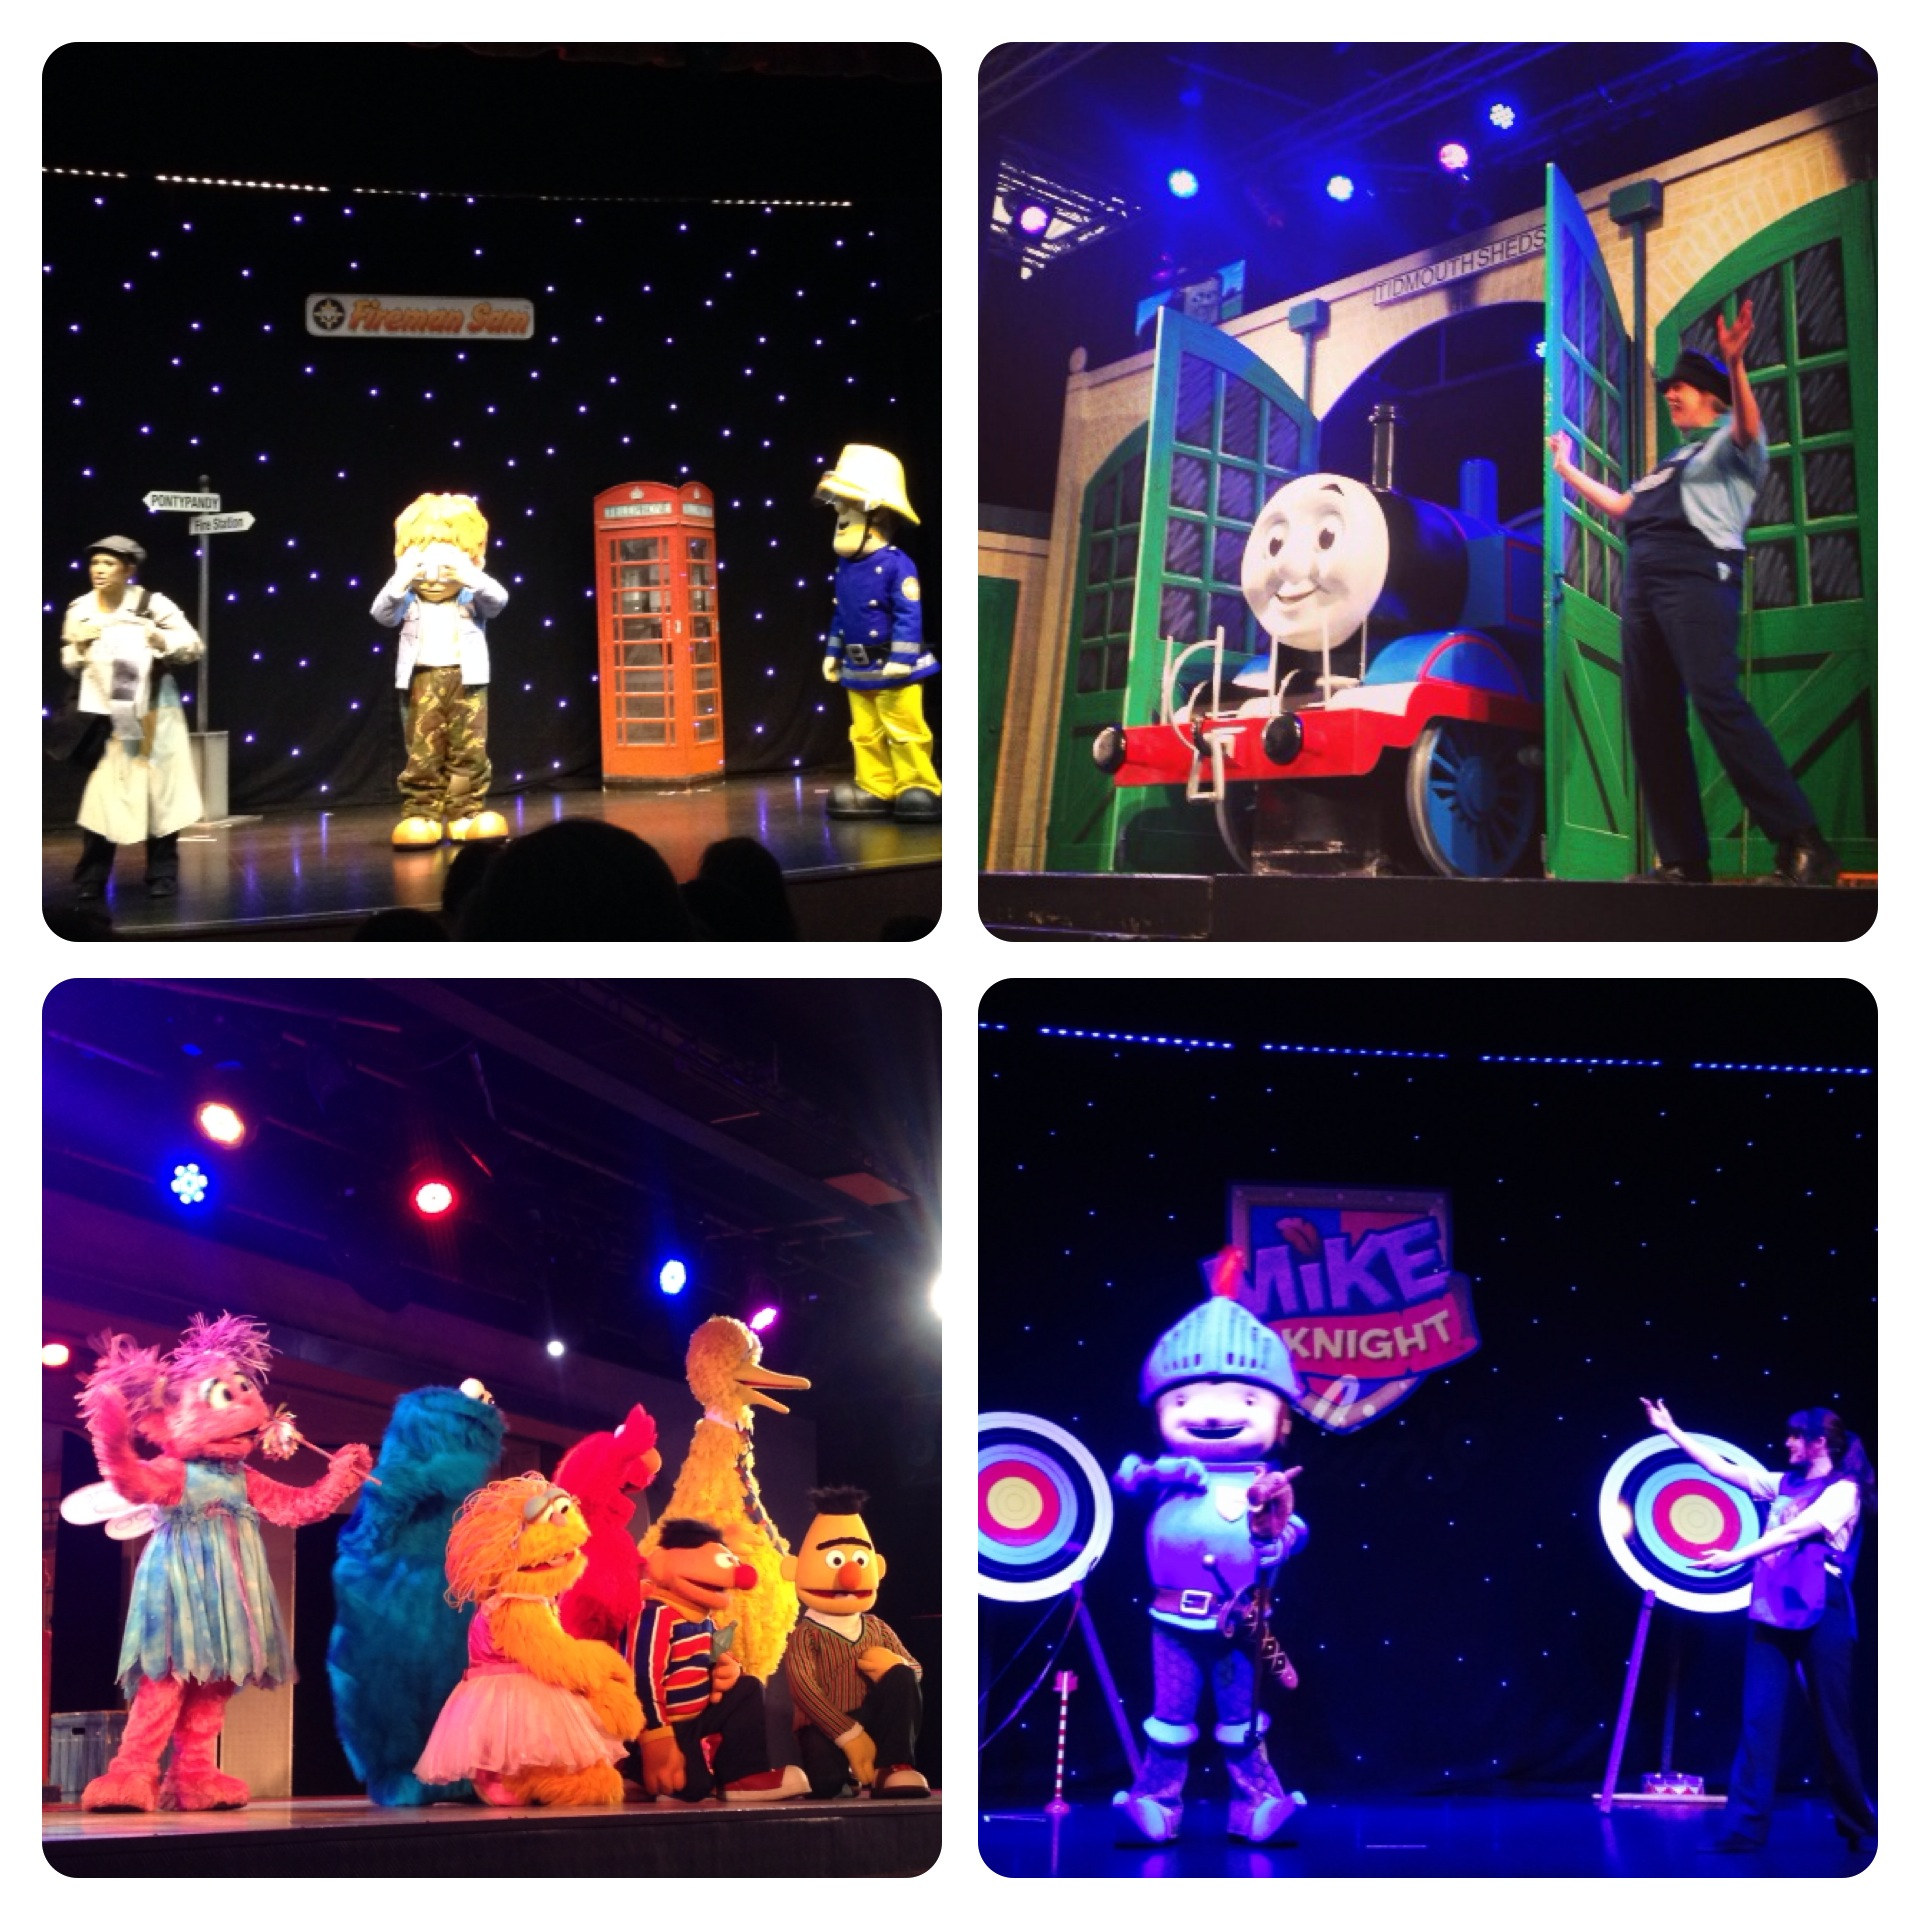 Live Shows and Characters at Butlins